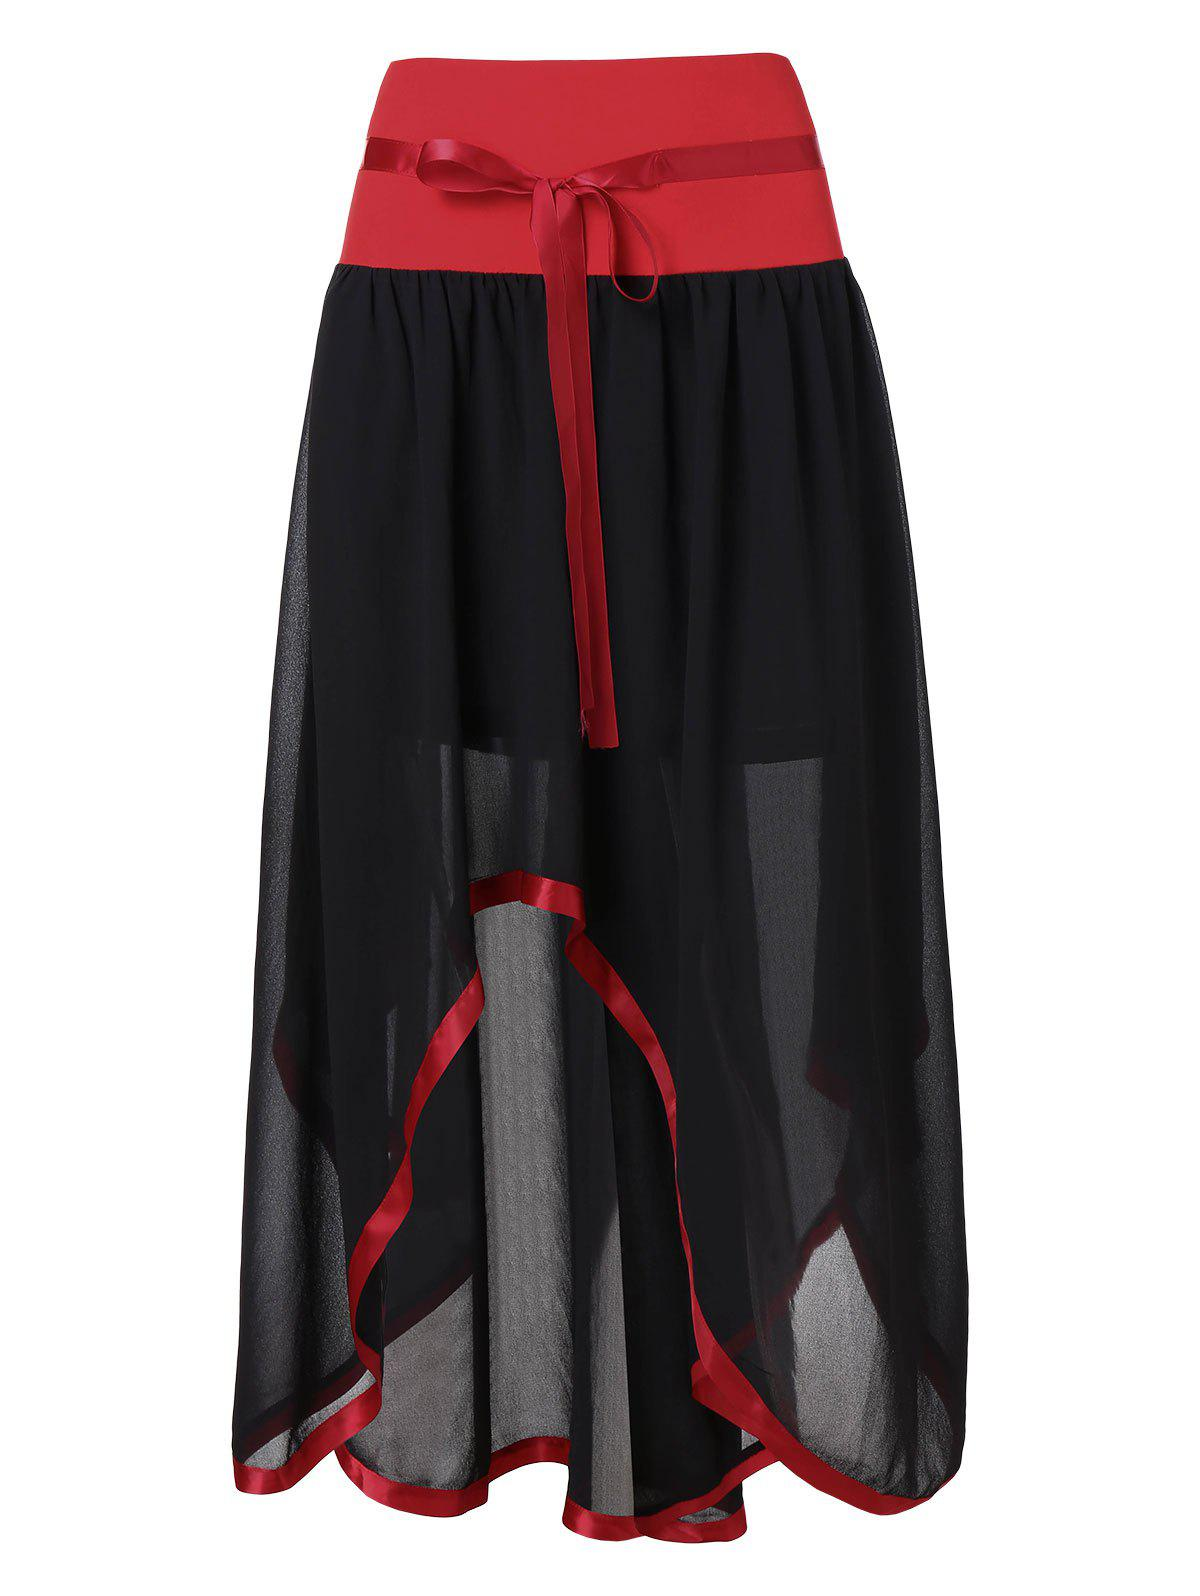 0d621c057c5fa 60% OFF   2019 Plus Size High Waist Midi Overlay Skirt